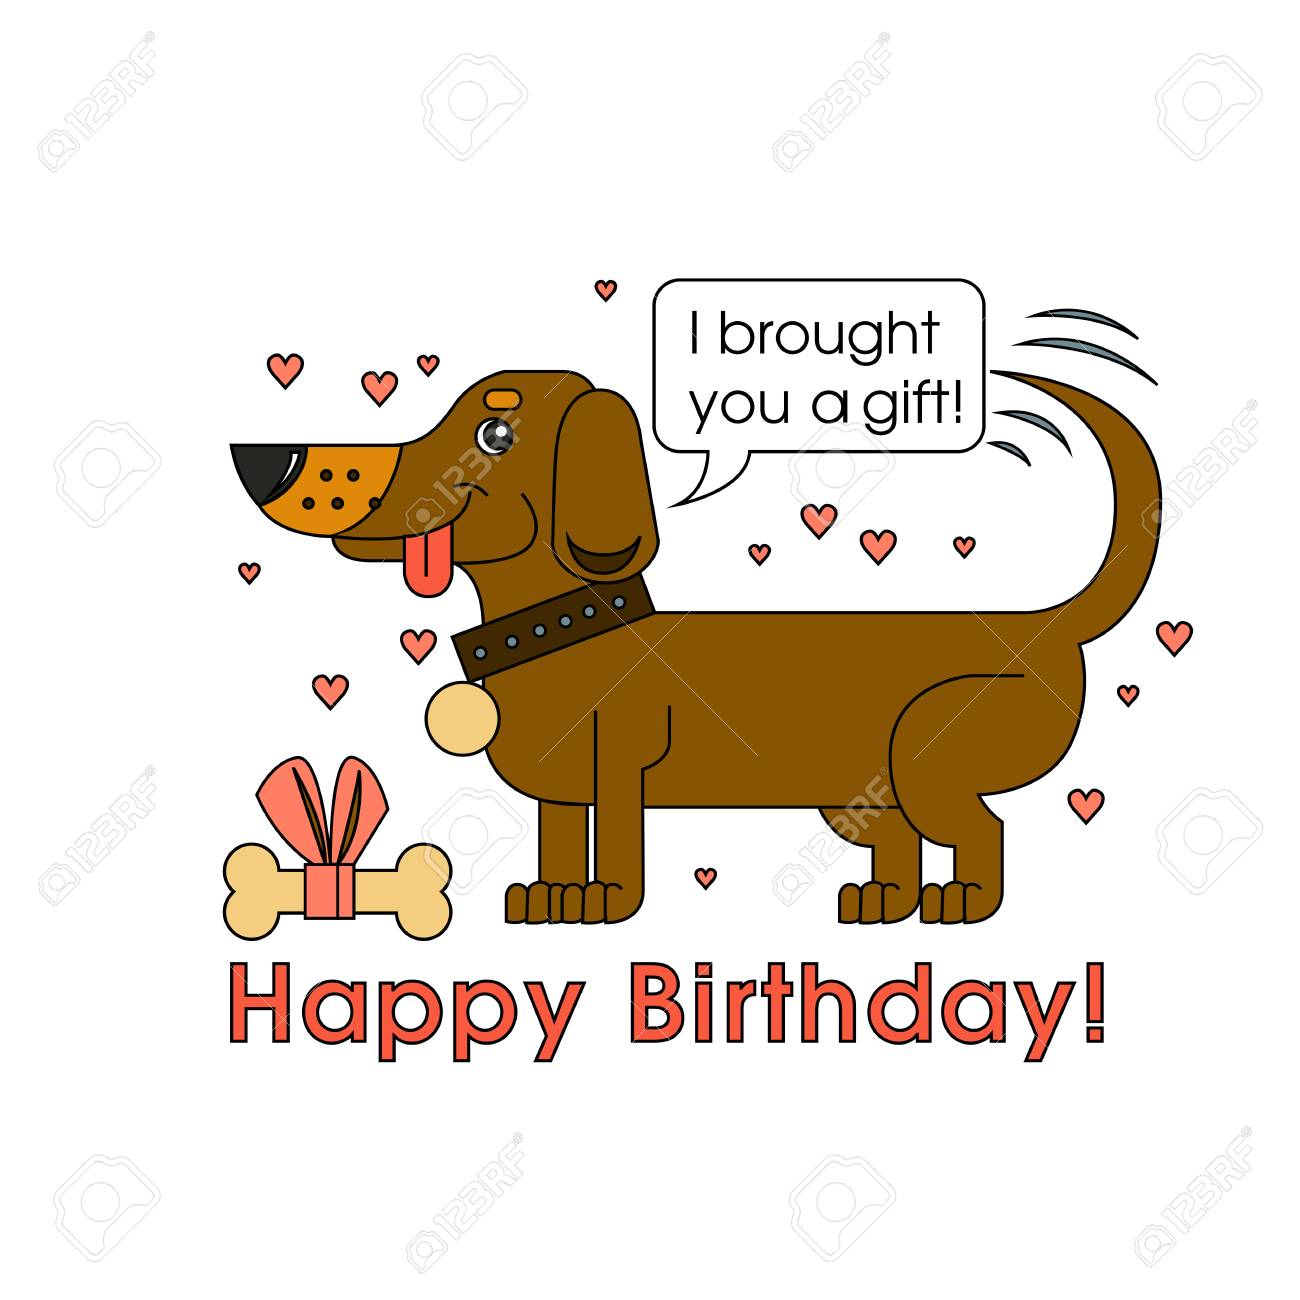 Happy Birthday Card For Dog Lover Happy Dog Of The Breed Of Royalty Free Cliparts Vectors And Stock Illustration Image 103046862